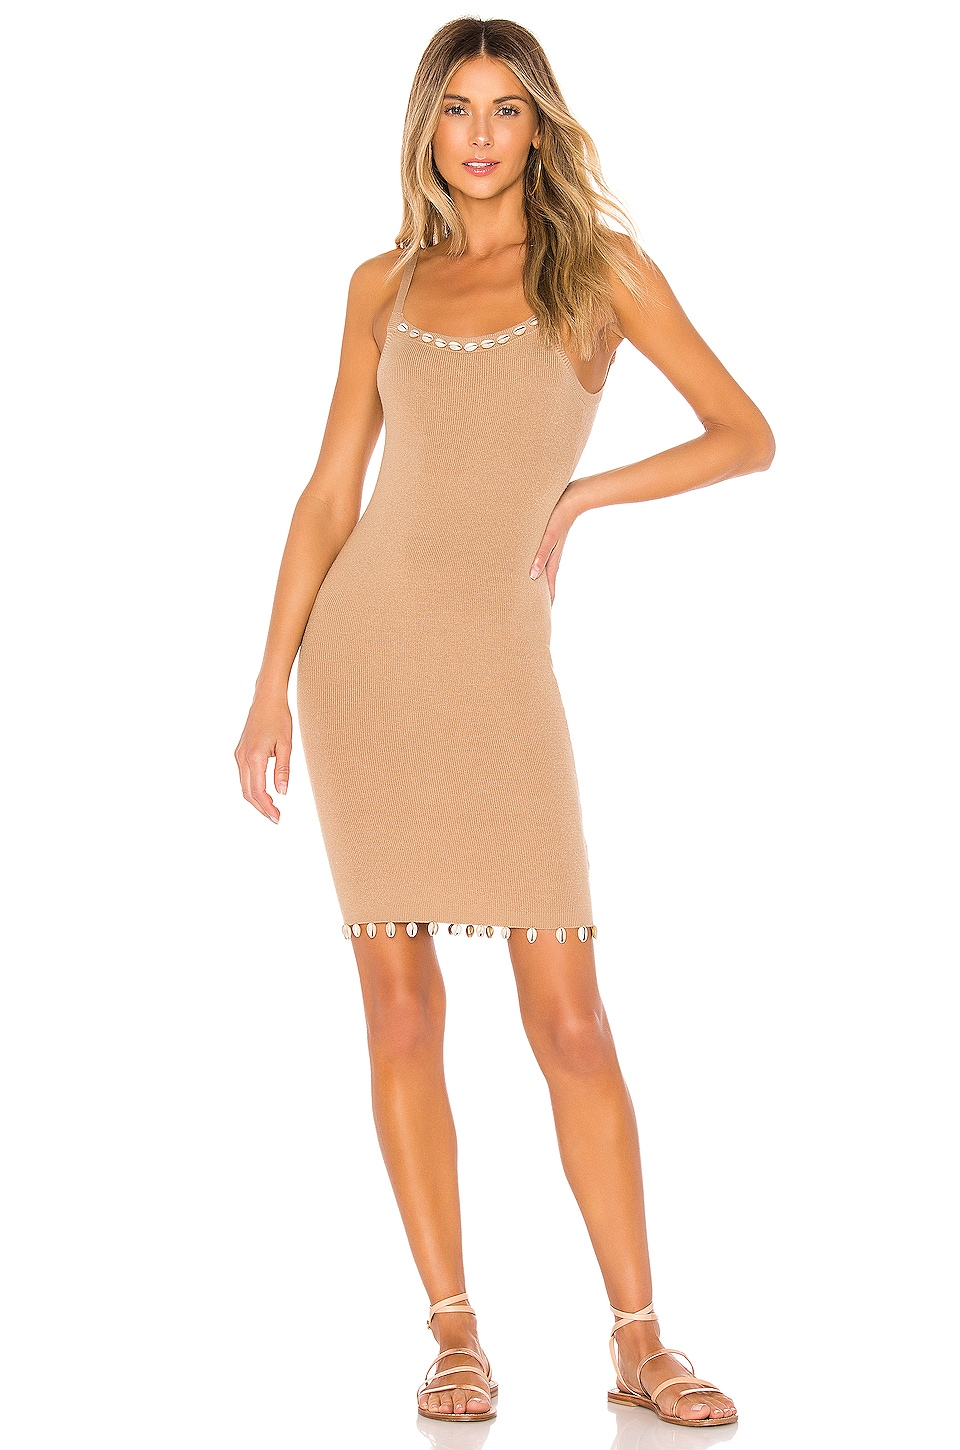 Tularosa Mauritius Dress in Natural